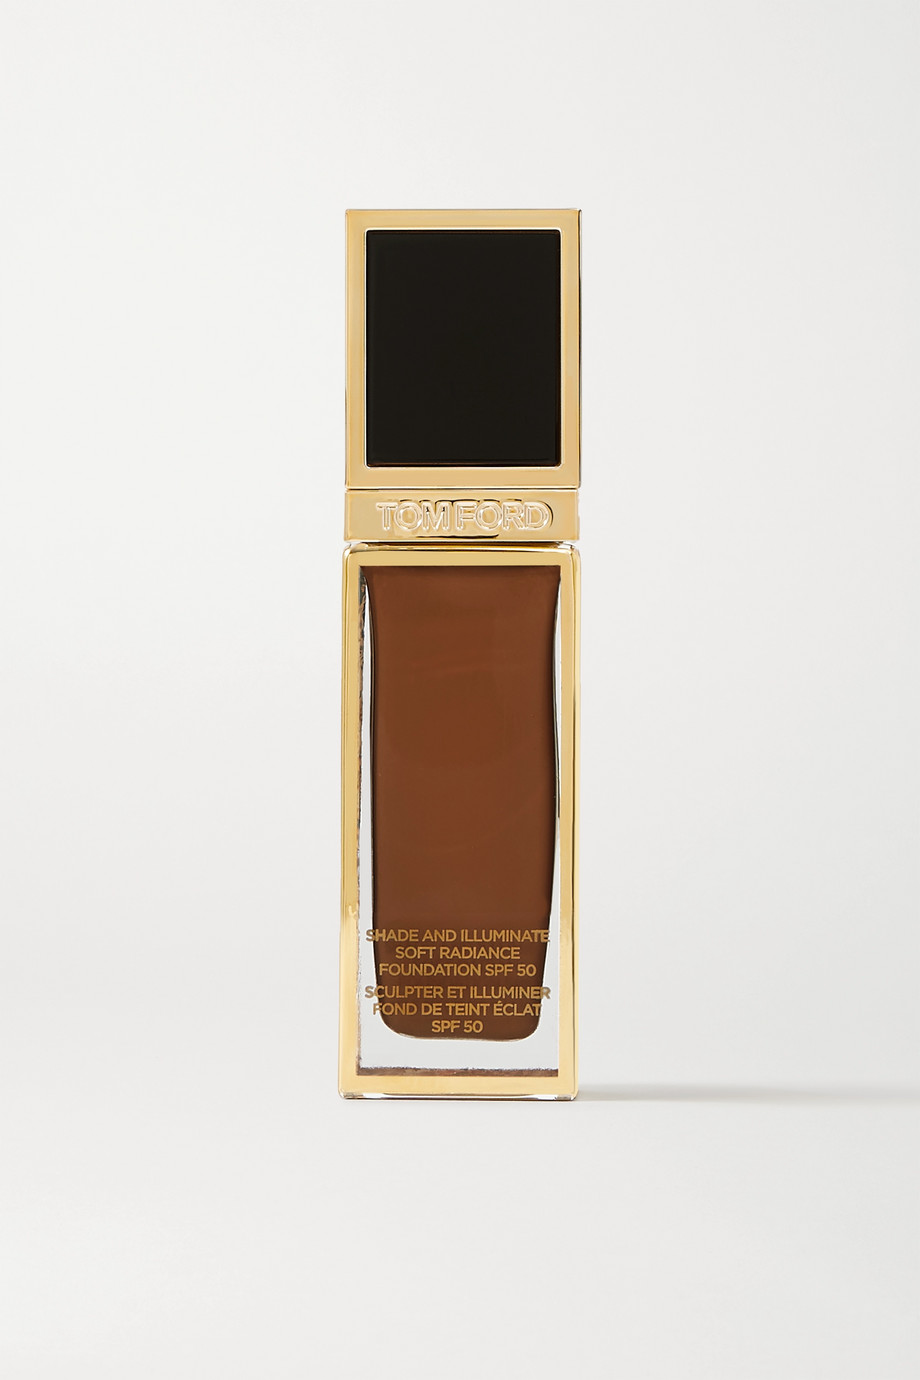 TOM FORD BEAUTY Shade and Illuminate Soft Radiance Foundation SPF50 - 10.7 Amber, 30ml